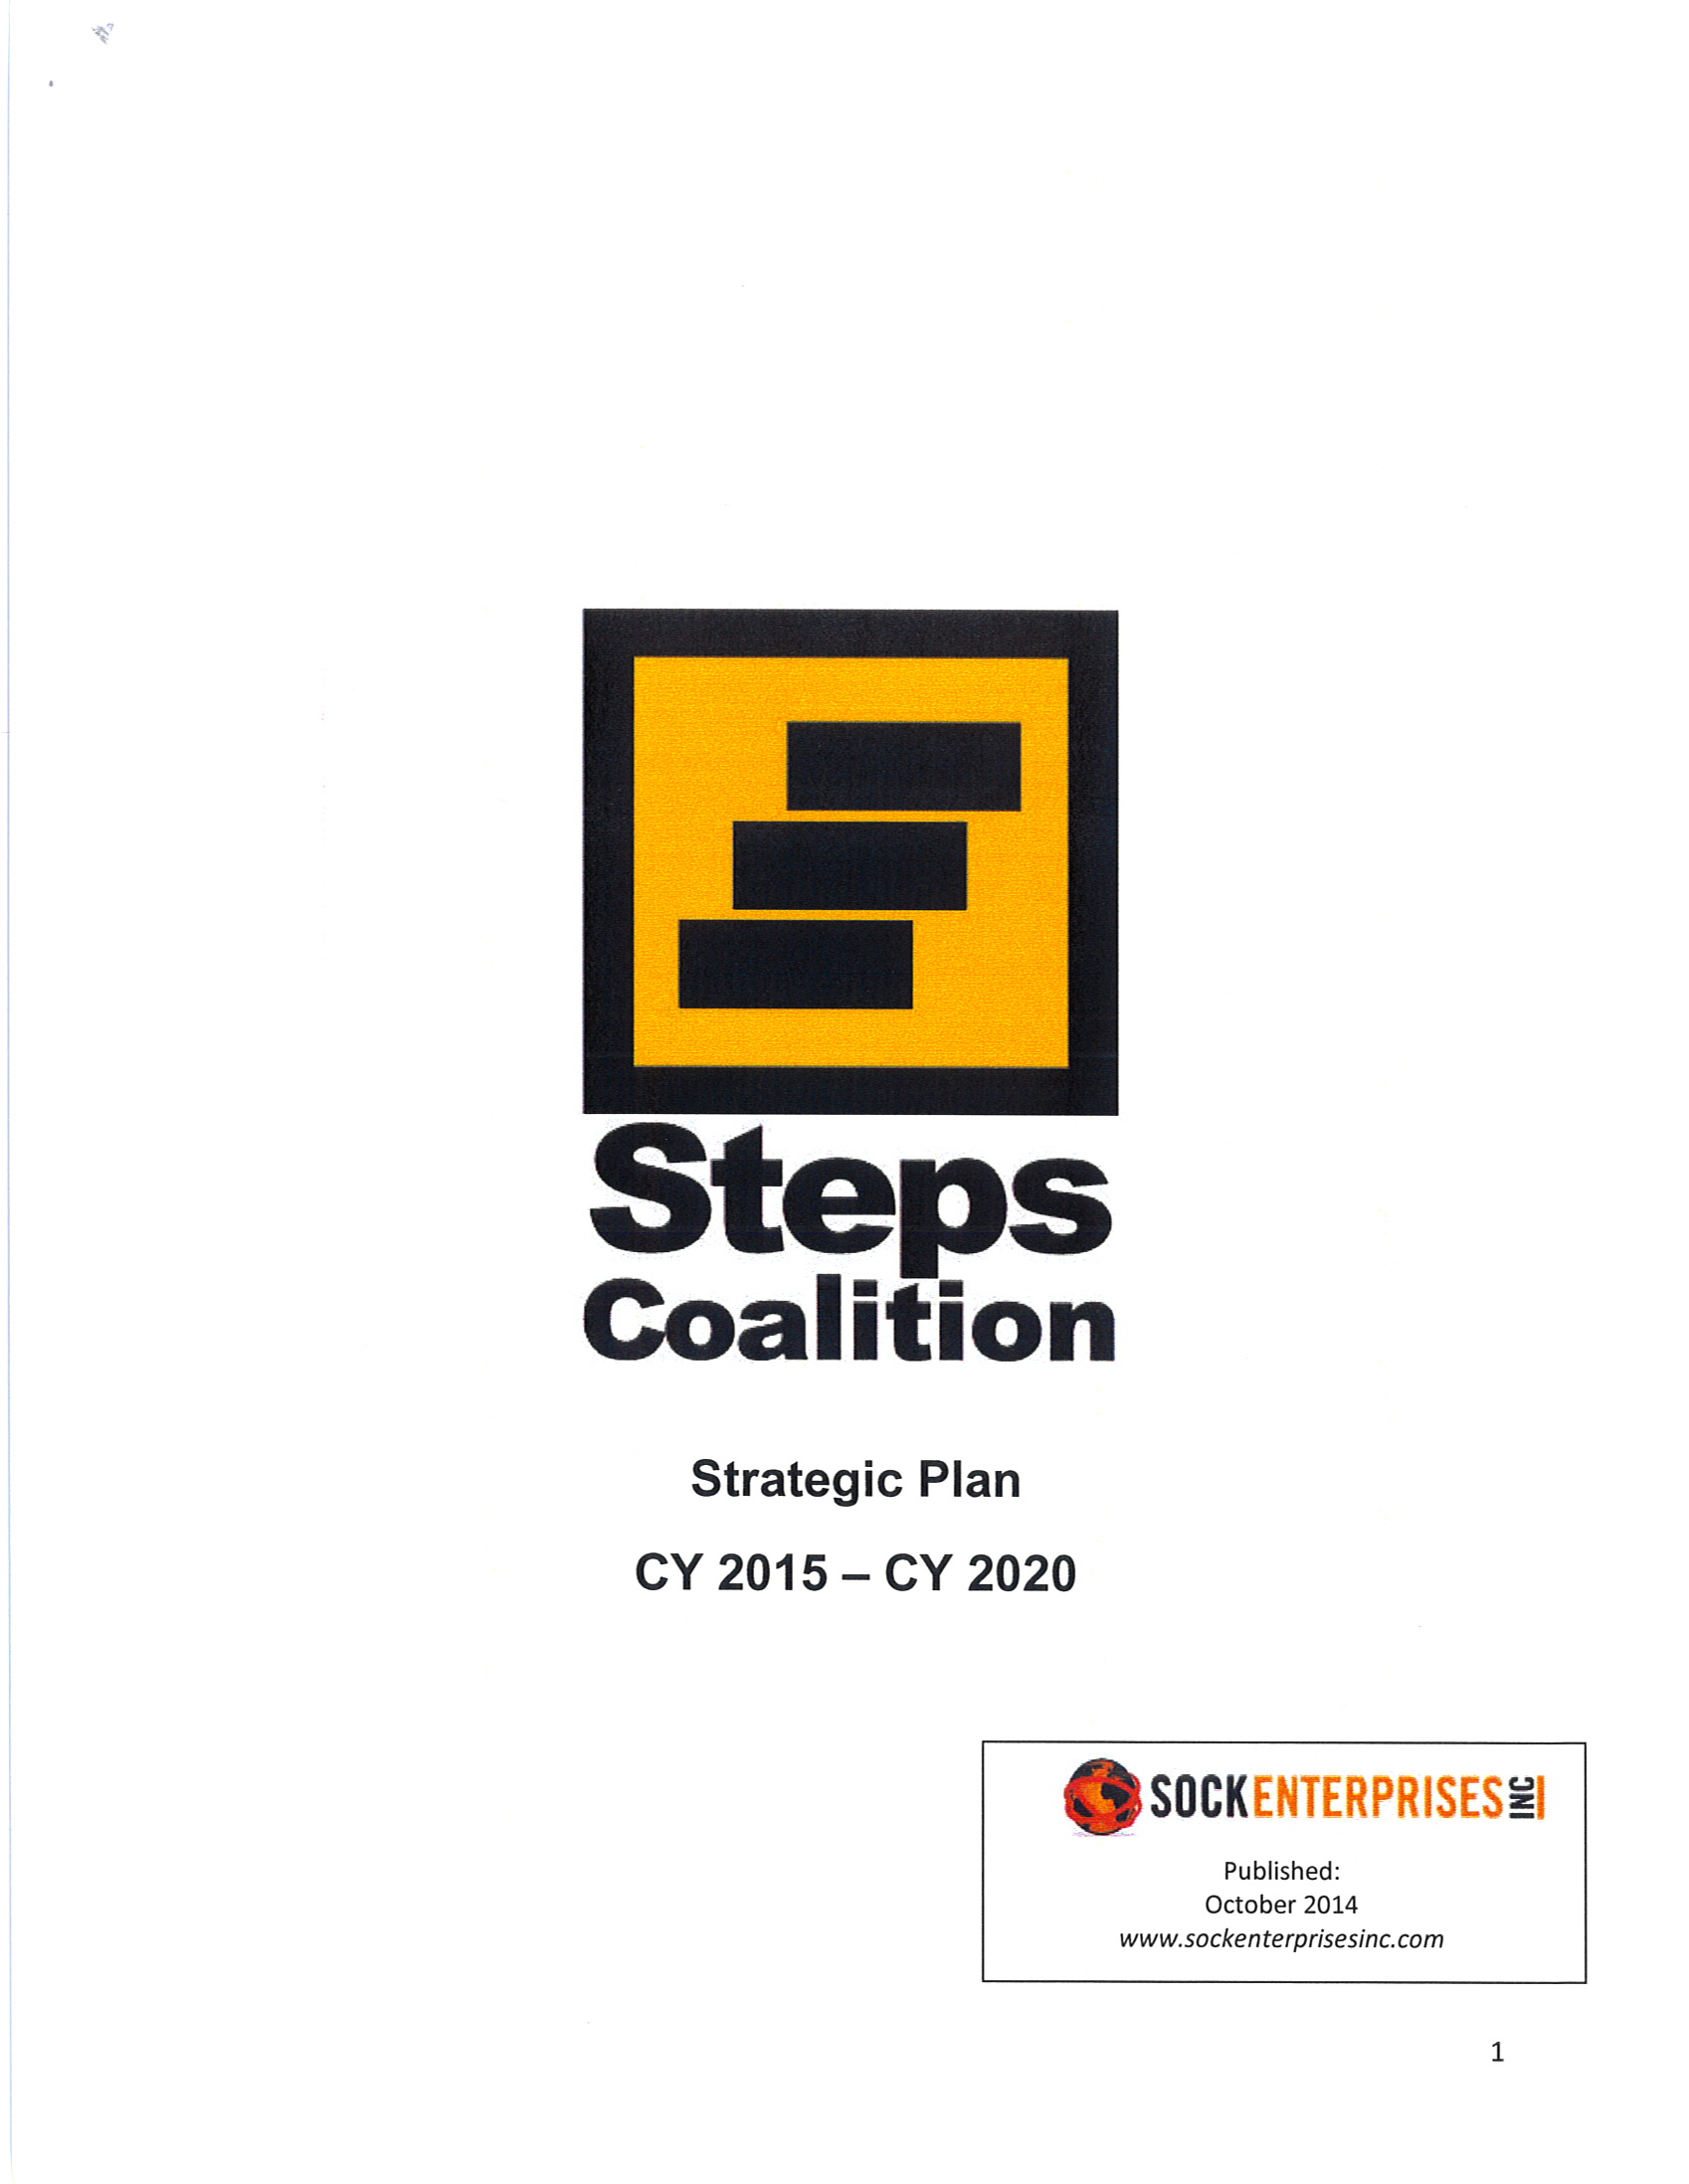 Steps_Coalition_Strategic_Plan_for_2015-2020__03282015__Page_01.jpg